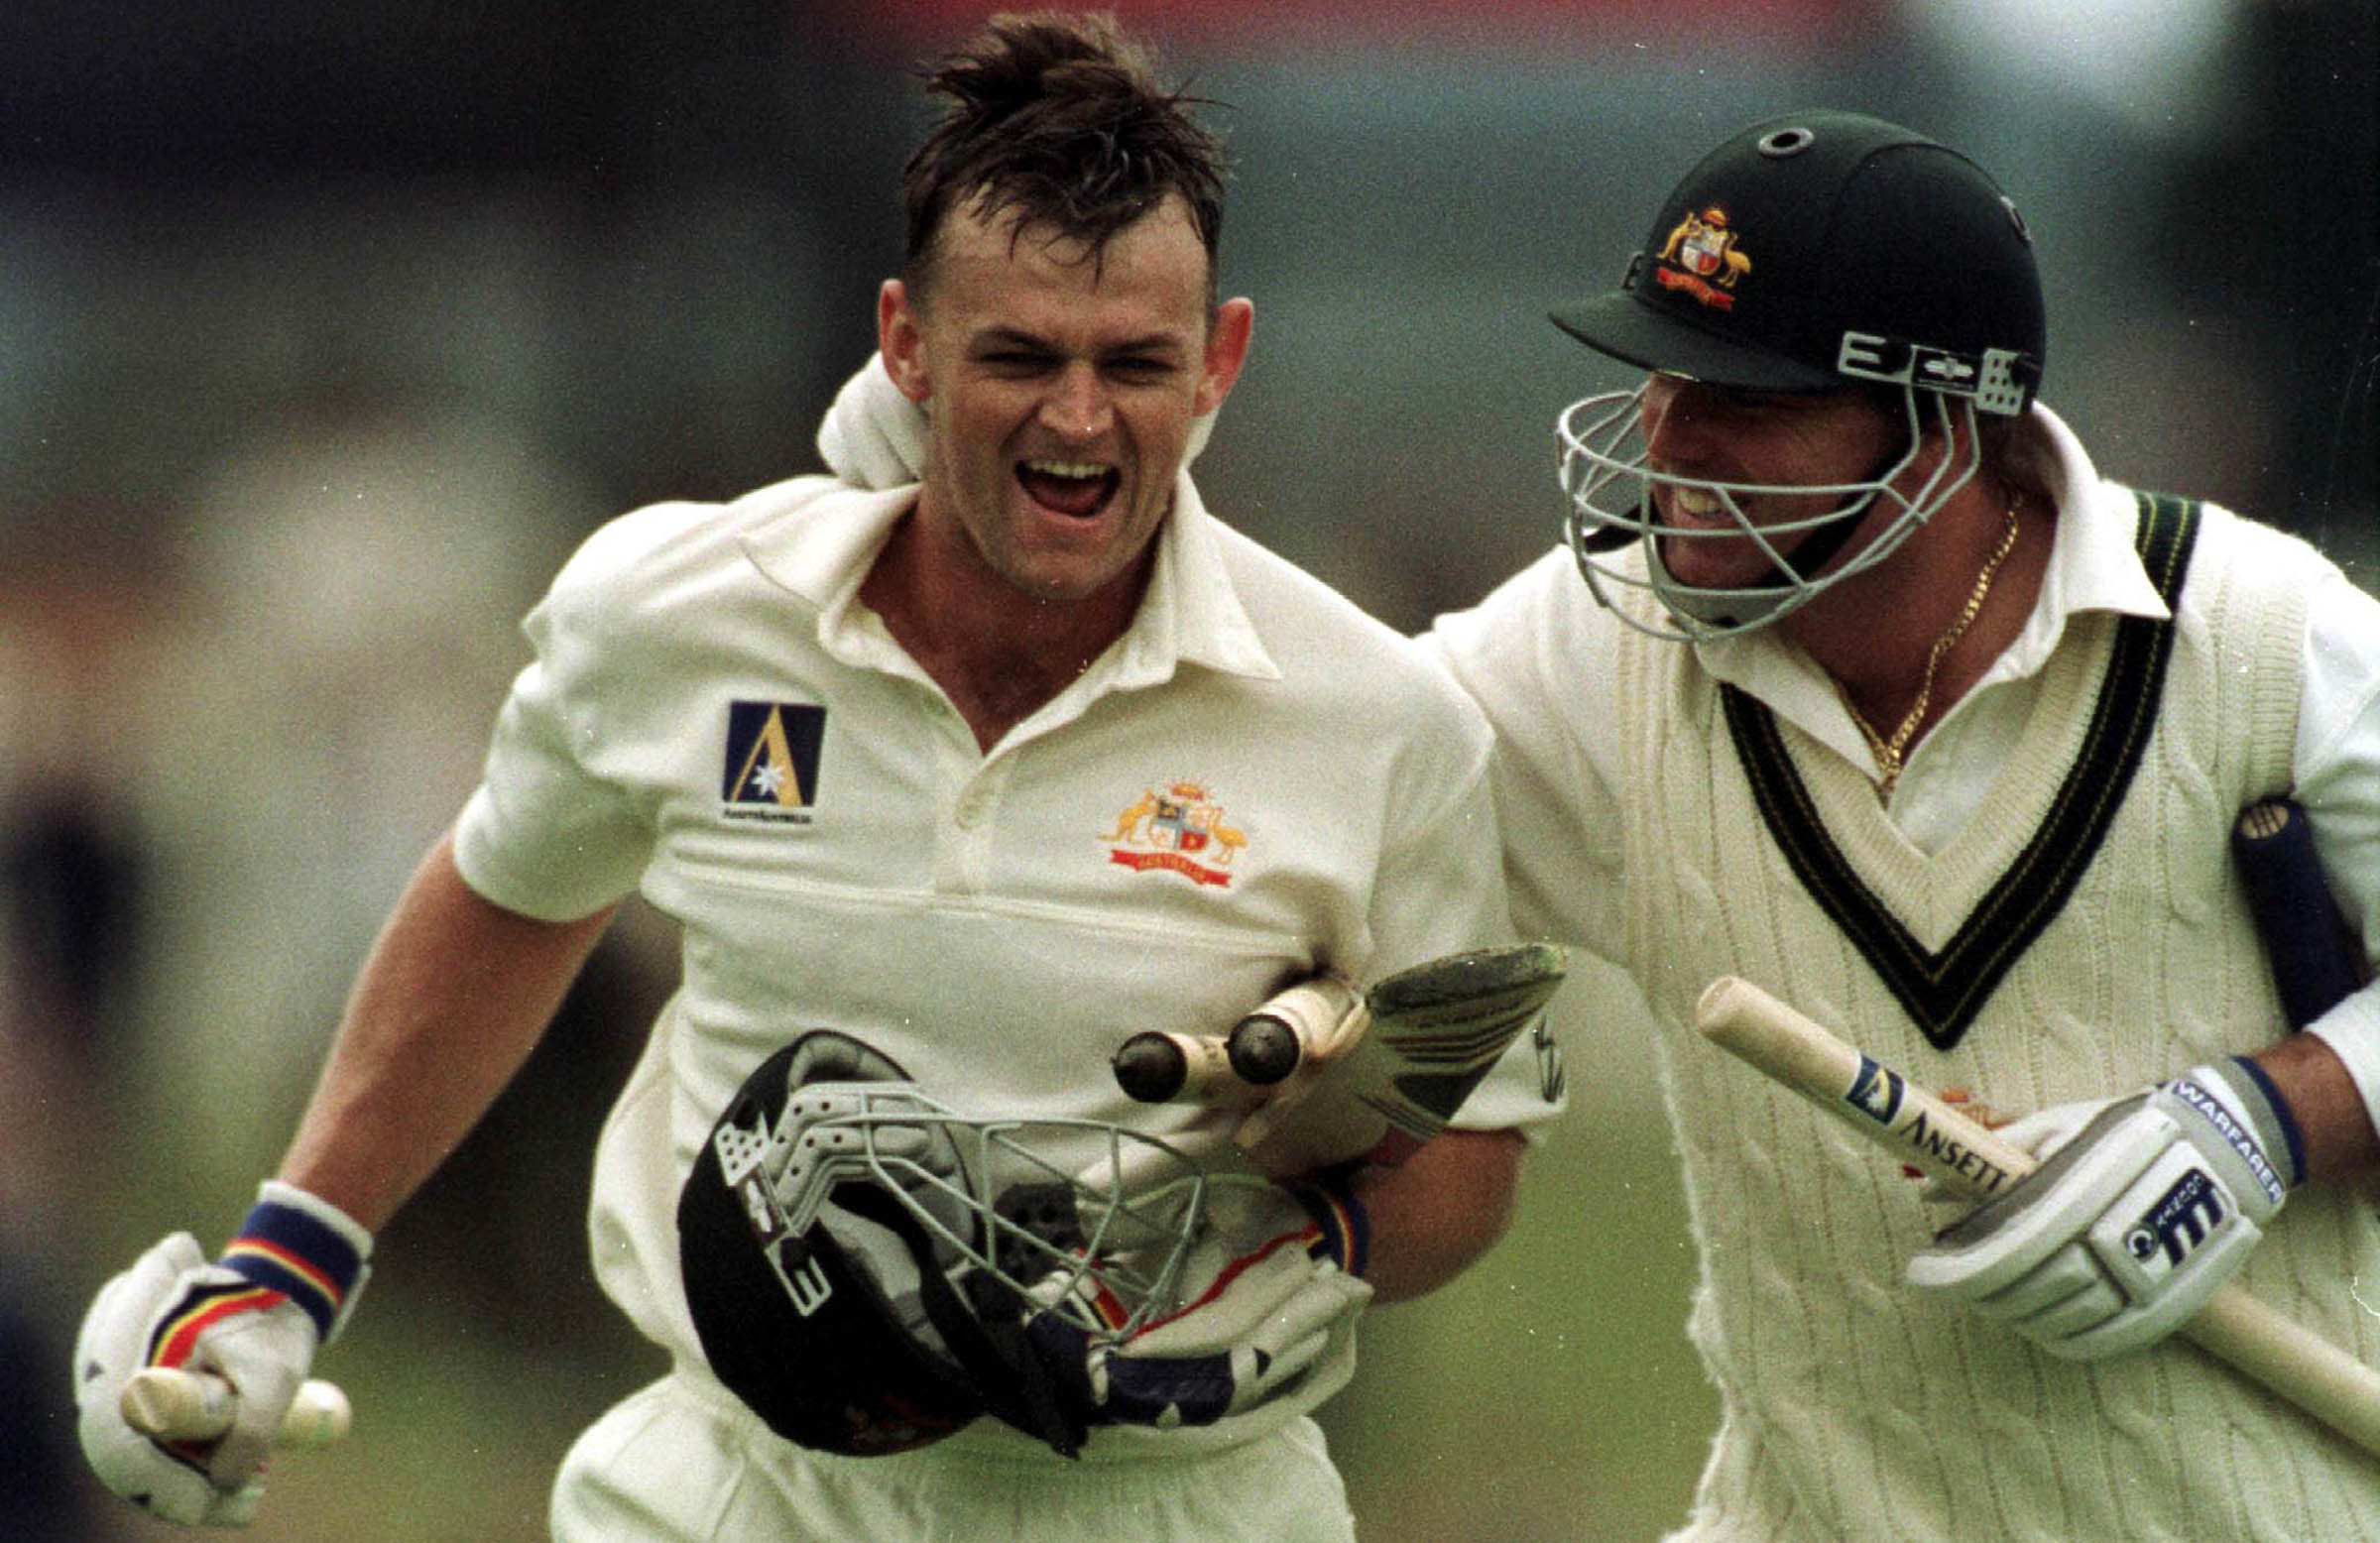 An ecstatic Gilchrist with Shane Warne after winning the 1999 Hobart Test // Getty